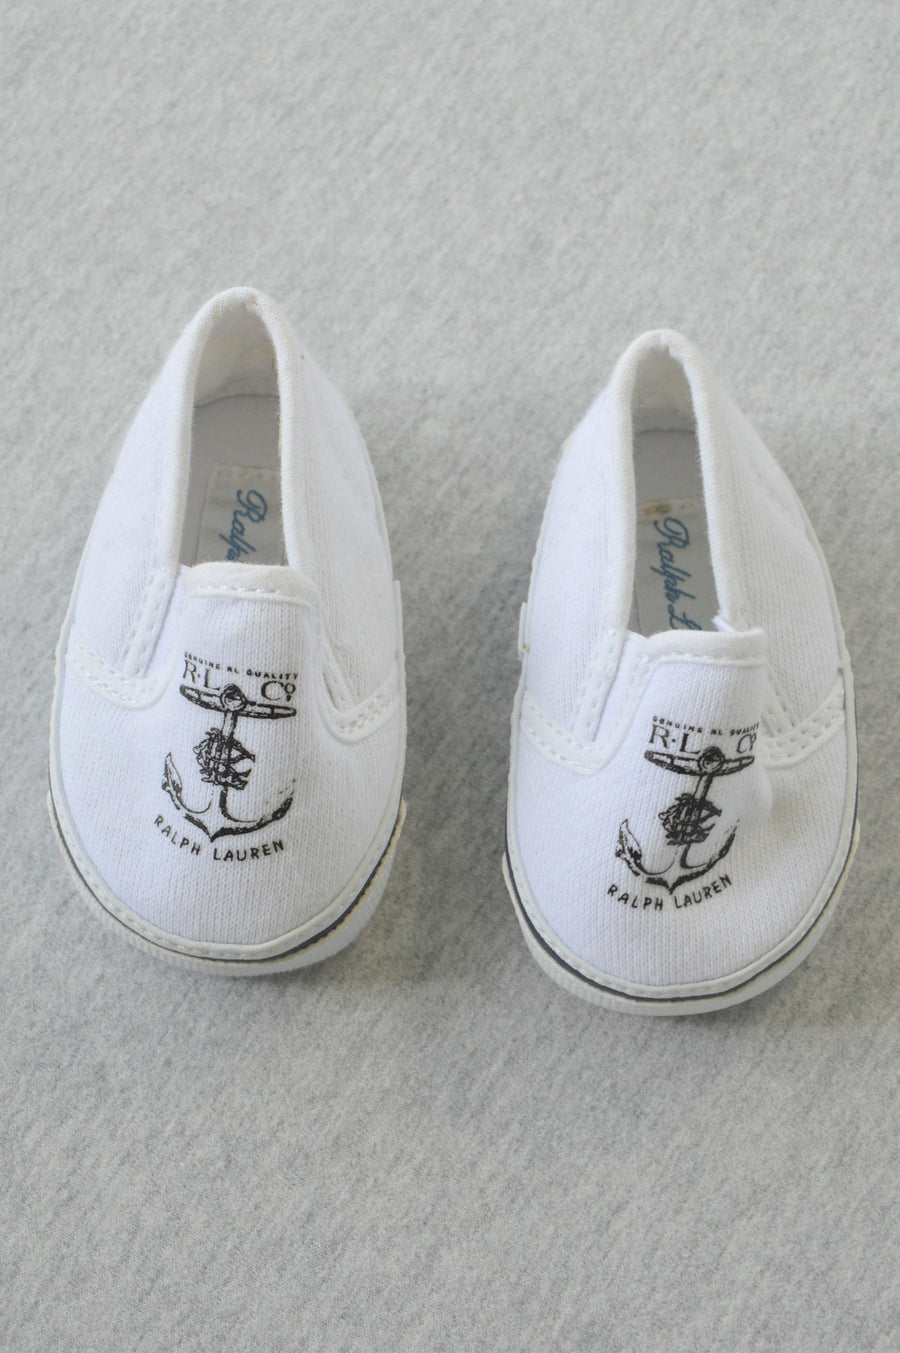 Ralph Lauren - nearly new - white textile boat shoes, size NB (shoe size US 0)